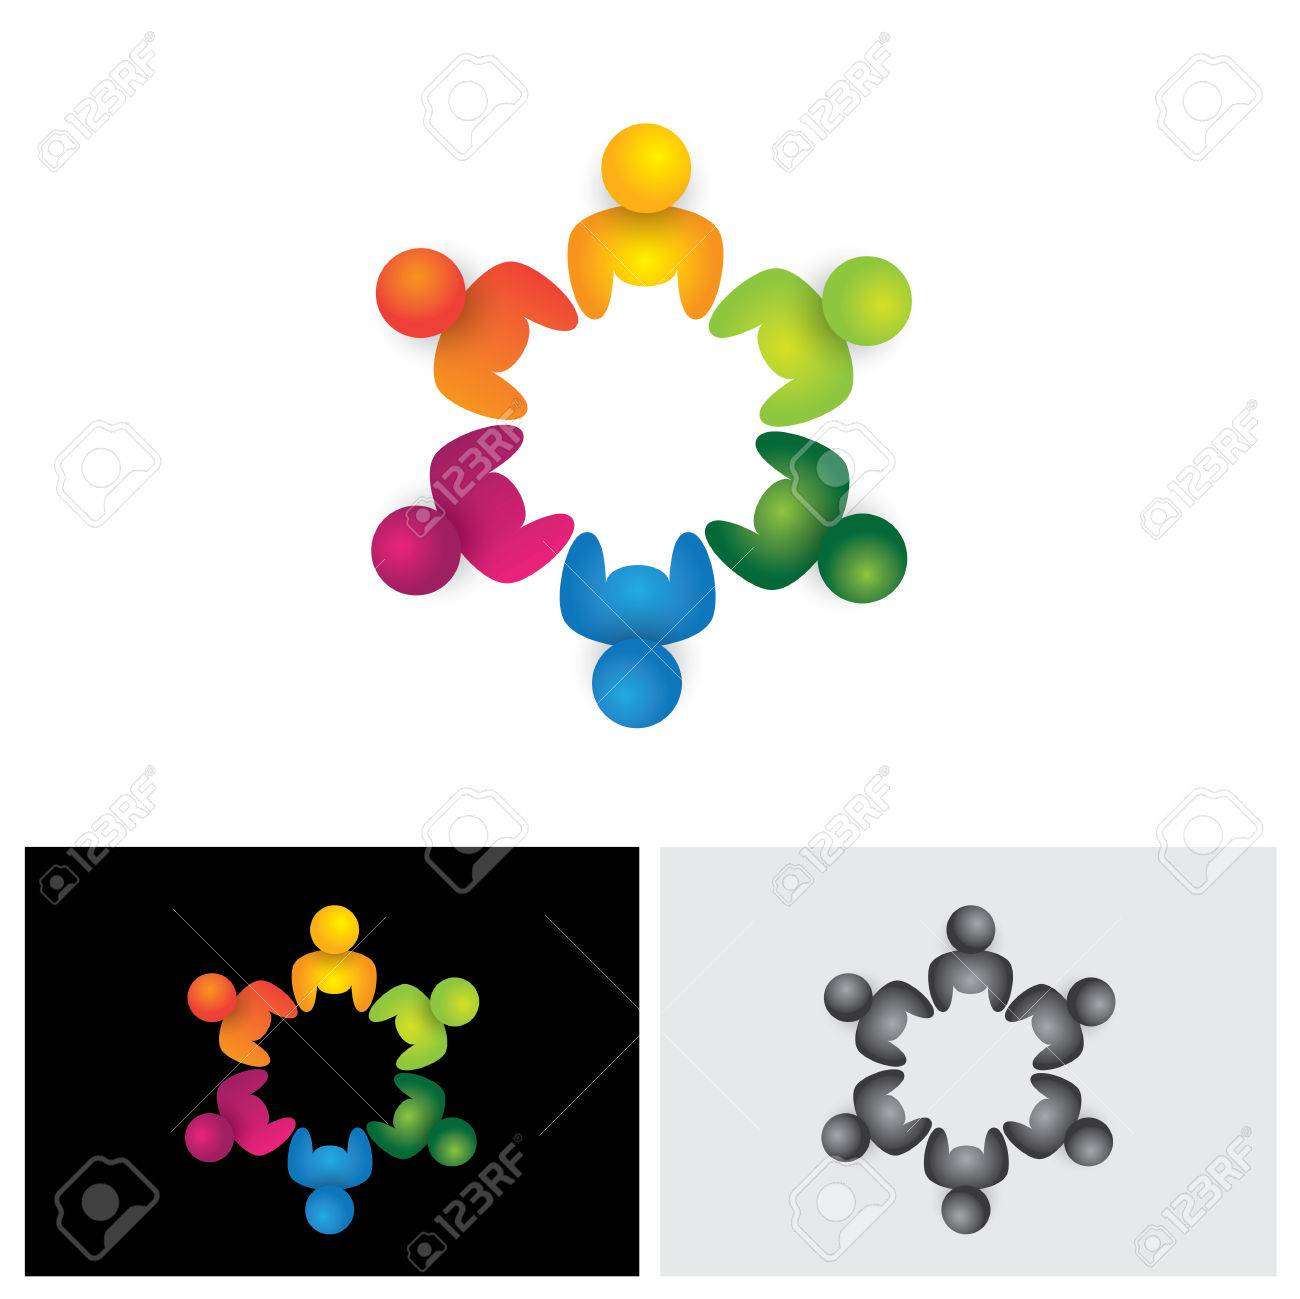 people in circle community or team of kids employees vector community or team of kids employees vector icon this graphic illustration also represents unity teamwork leadership leader qualities joy